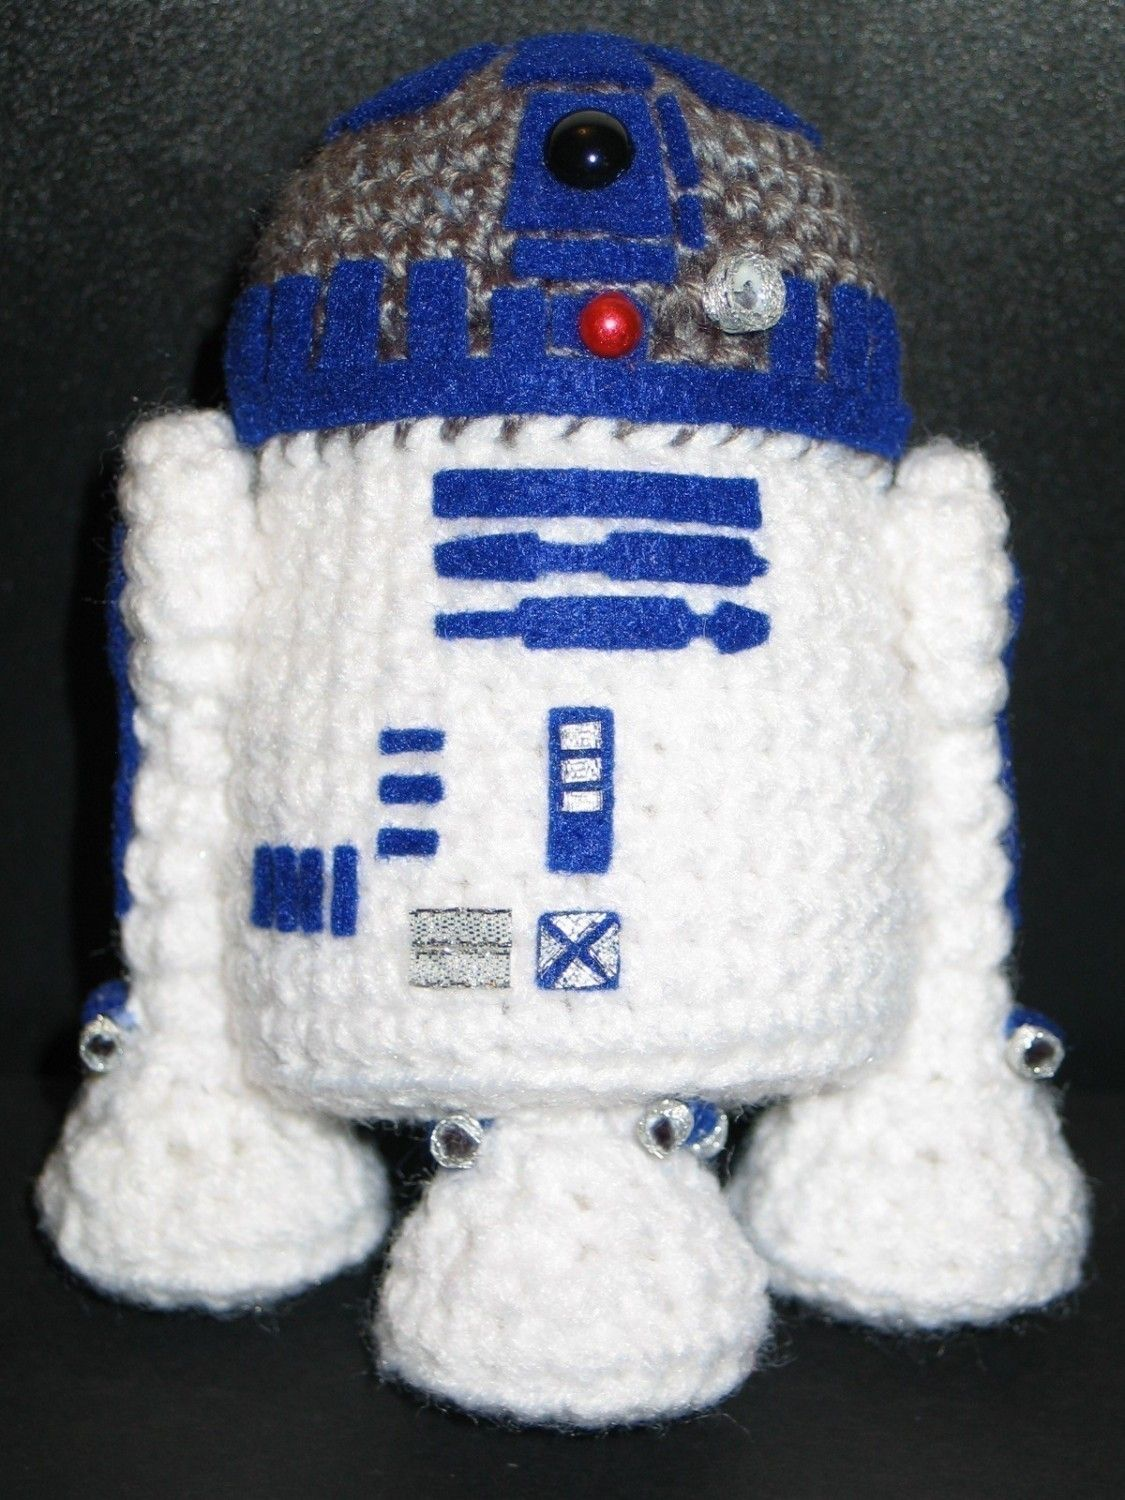 r2d2 amigurumi pdf muster von janama auf etsy handarbeiten pinterest riesen strick und m tze. Black Bedroom Furniture Sets. Home Design Ideas